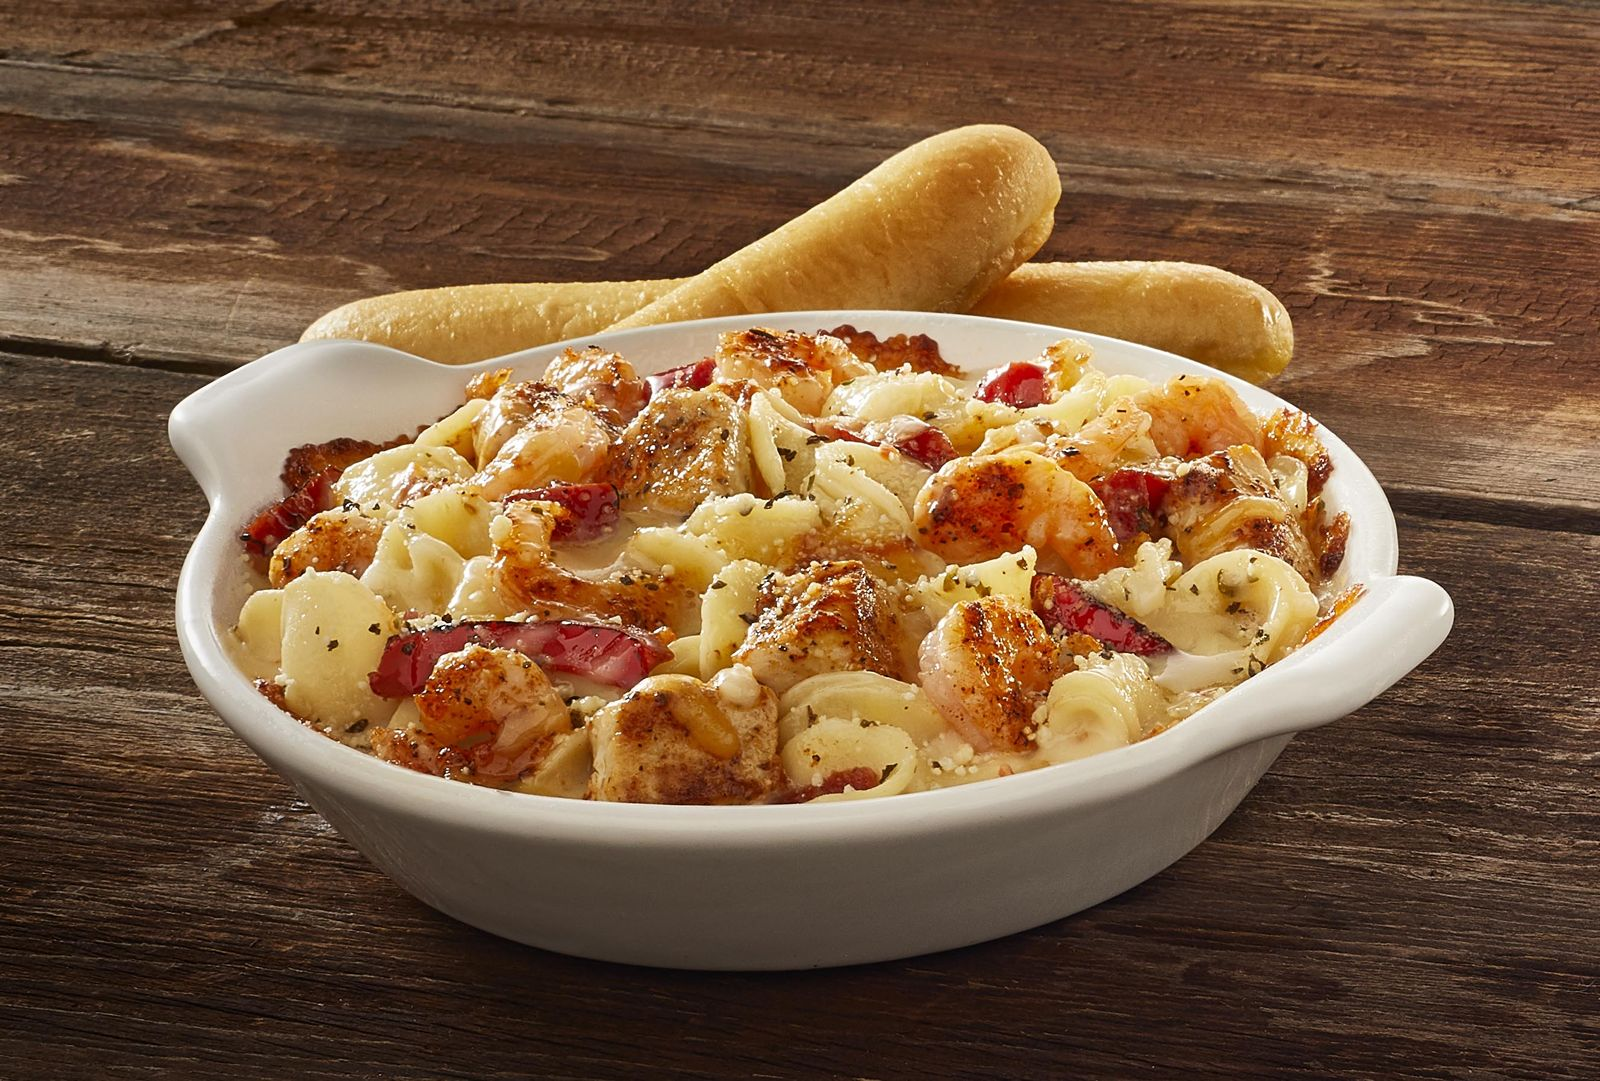 Fazoli's Drives Menu Innovation with Indulgent, Craveable Dishes